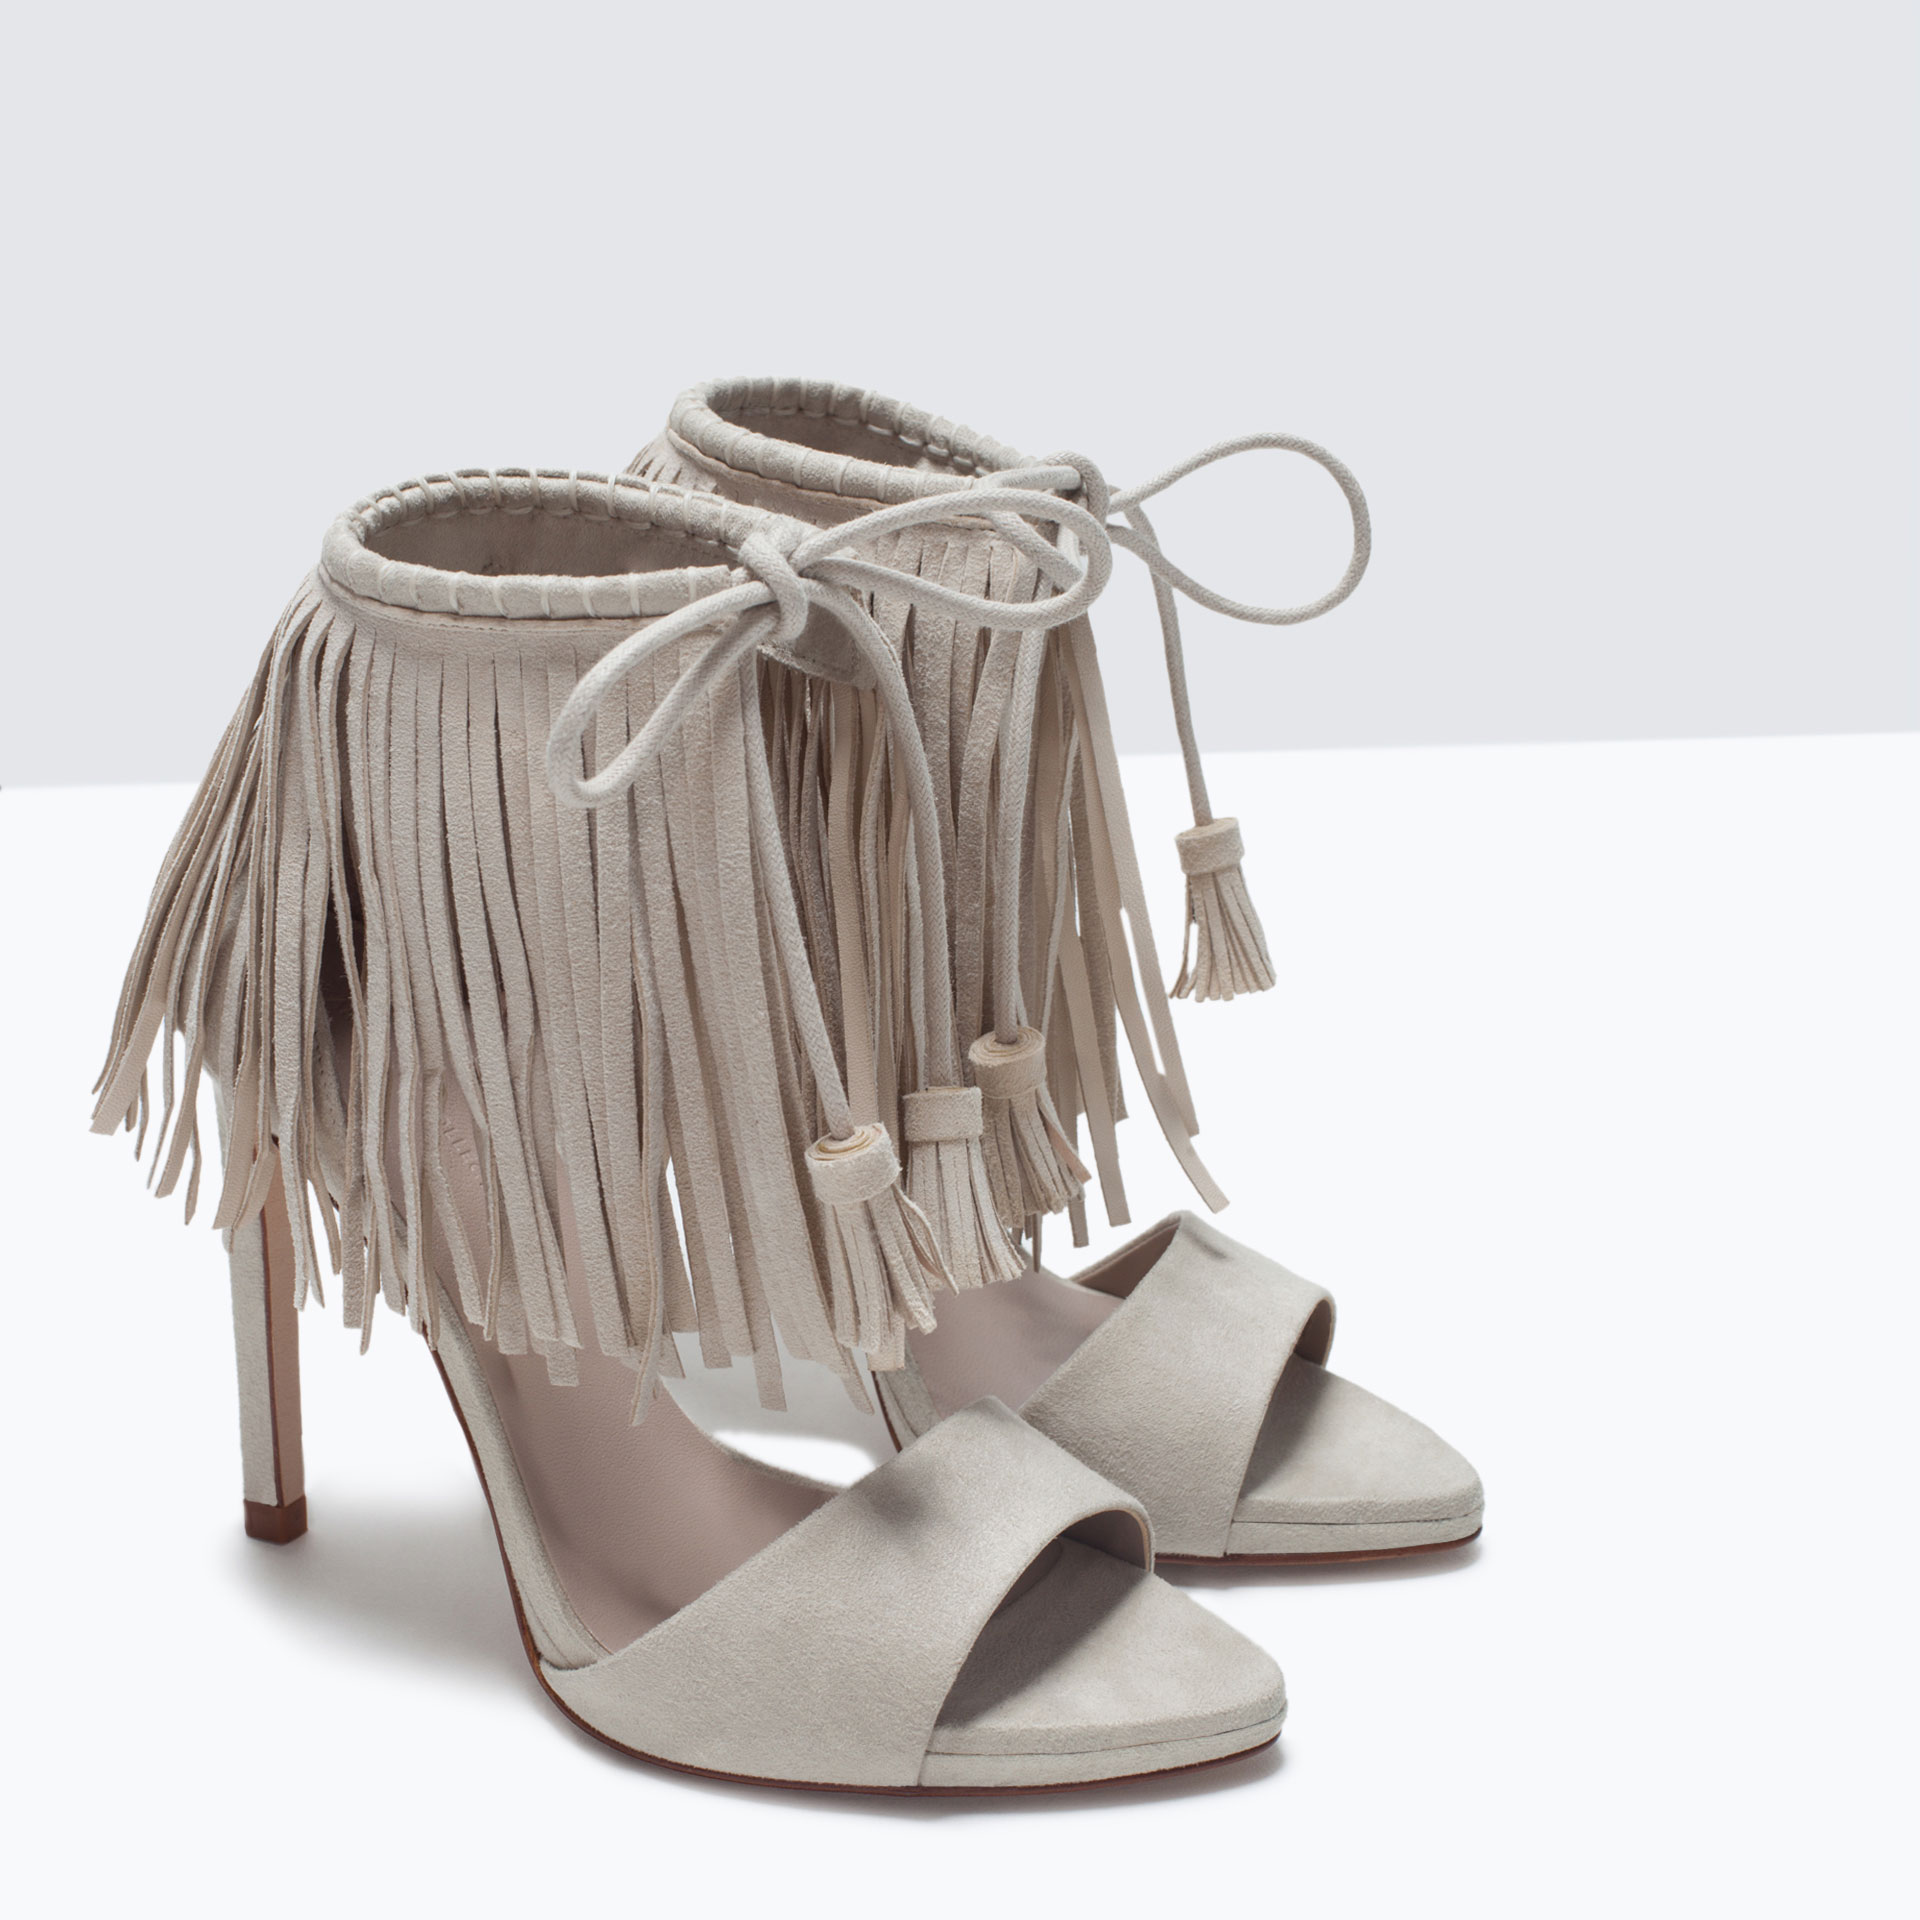 70197e8eb66 FRINGED HIGH HEEL SANDALS - View all - Shoes - WOMAN - SALE ...